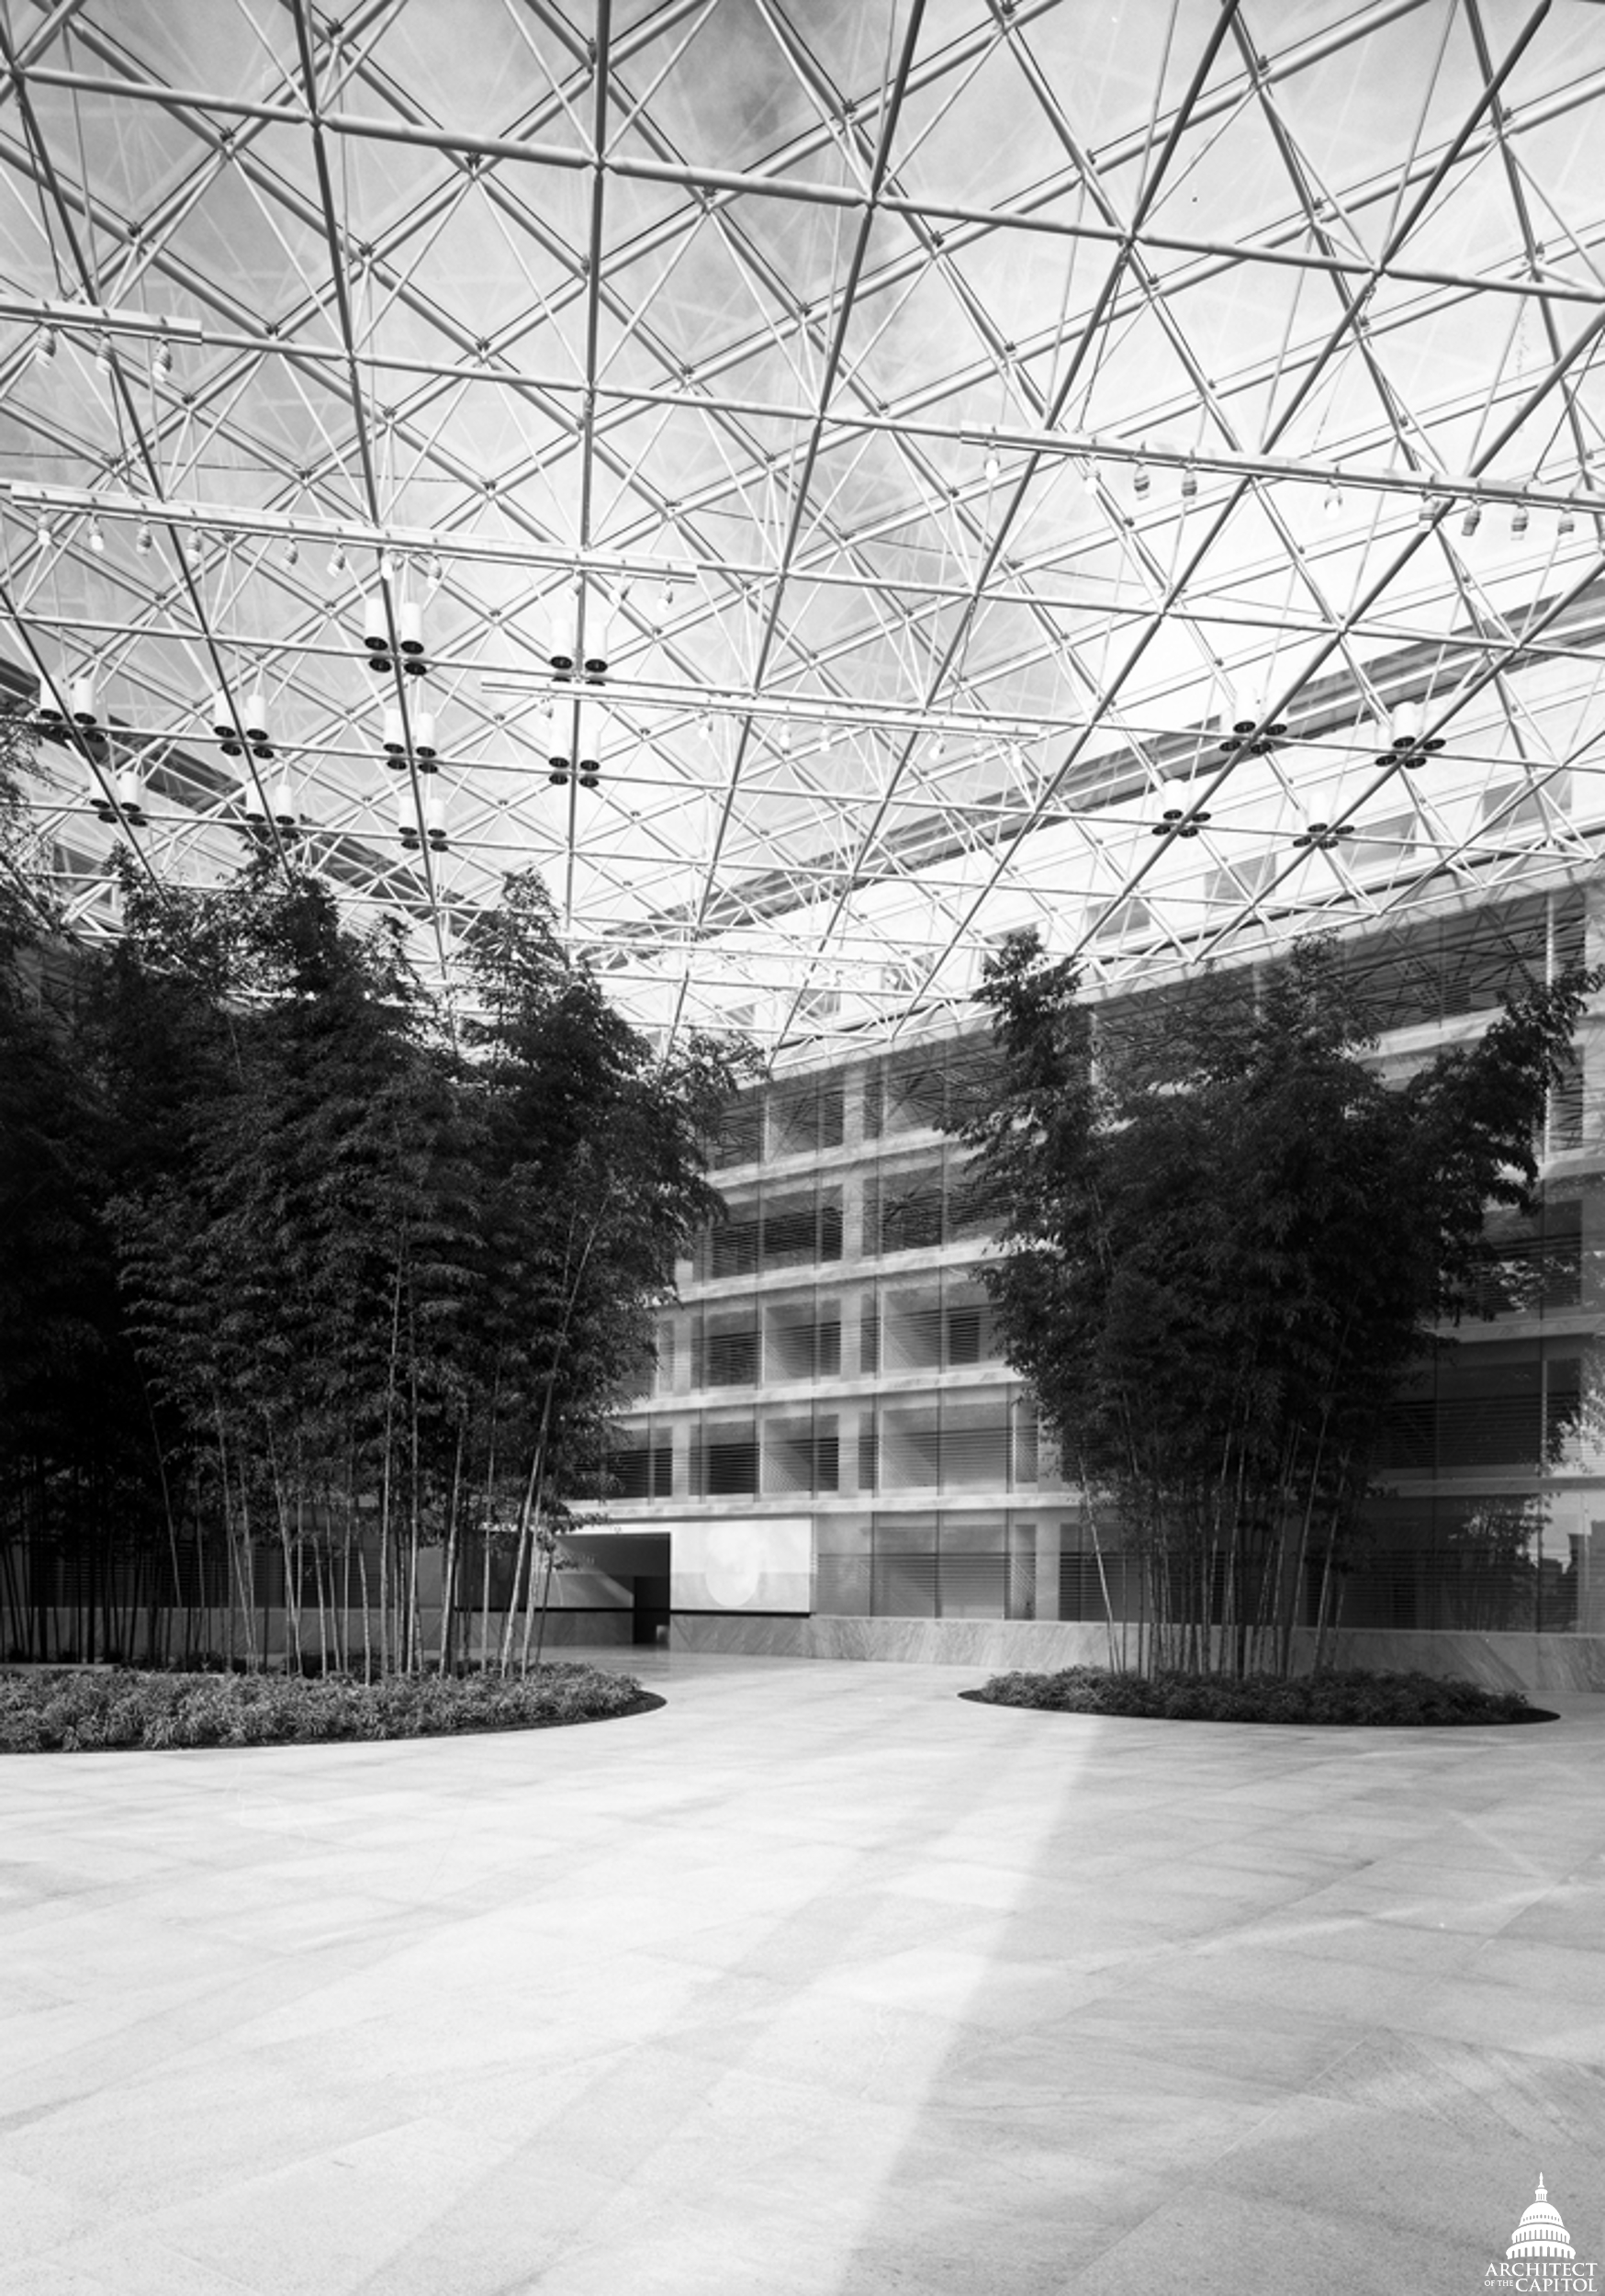 Interior view of the Thurgood Marshall Building's atrium and bamboo planters.